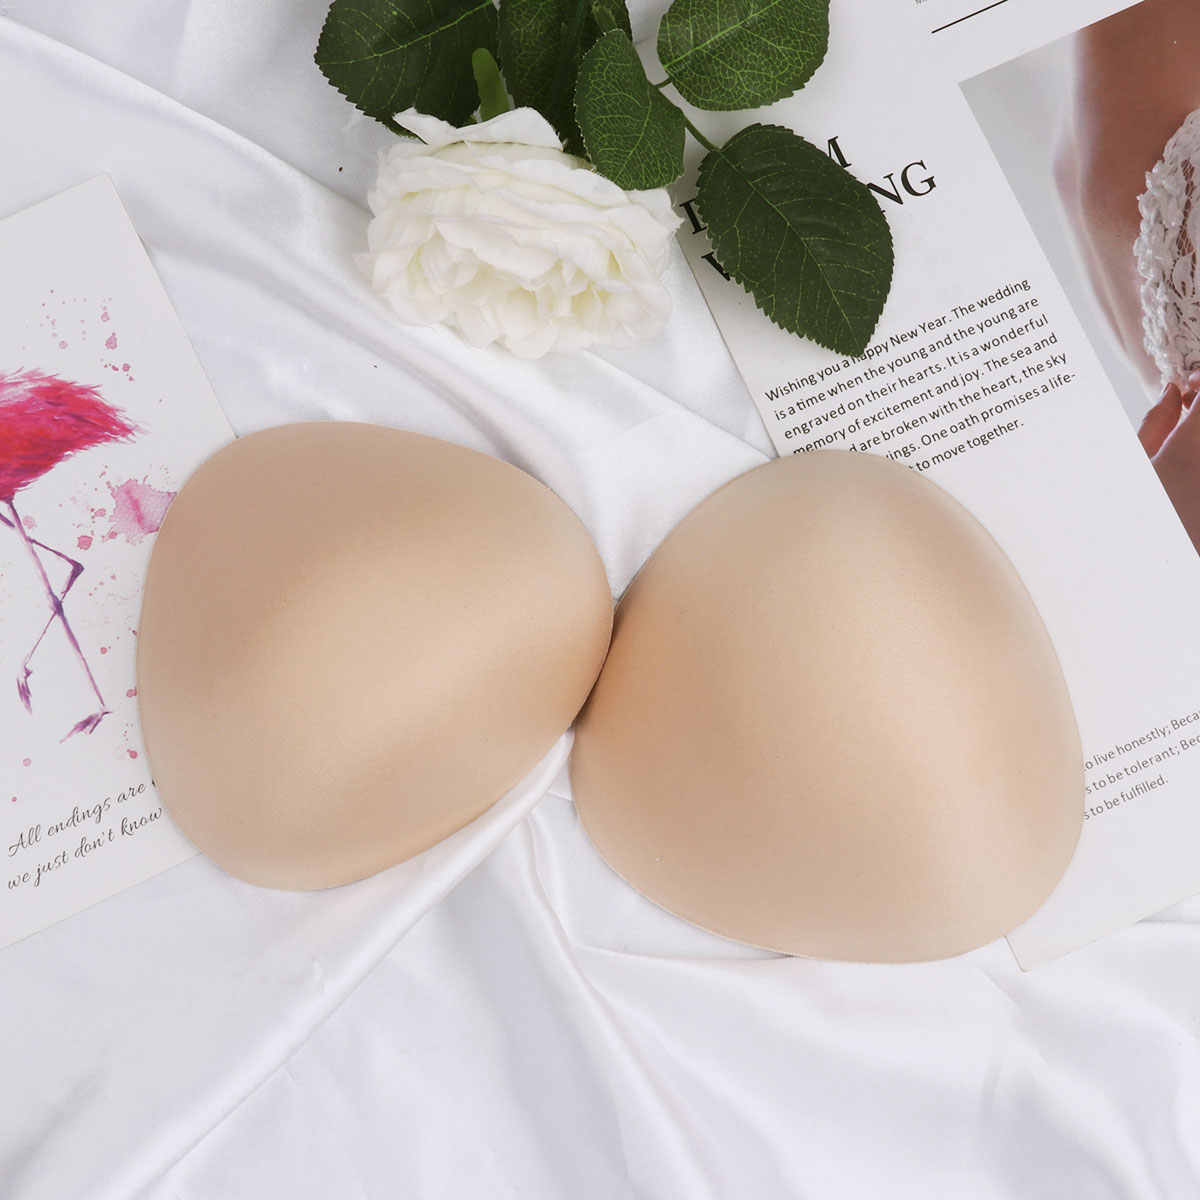 688c1e134a5 1 Pair Women Insert Bra Inserts Pads Waterdrop Shaped Push Up Fake Breast  Insert Comfortable for